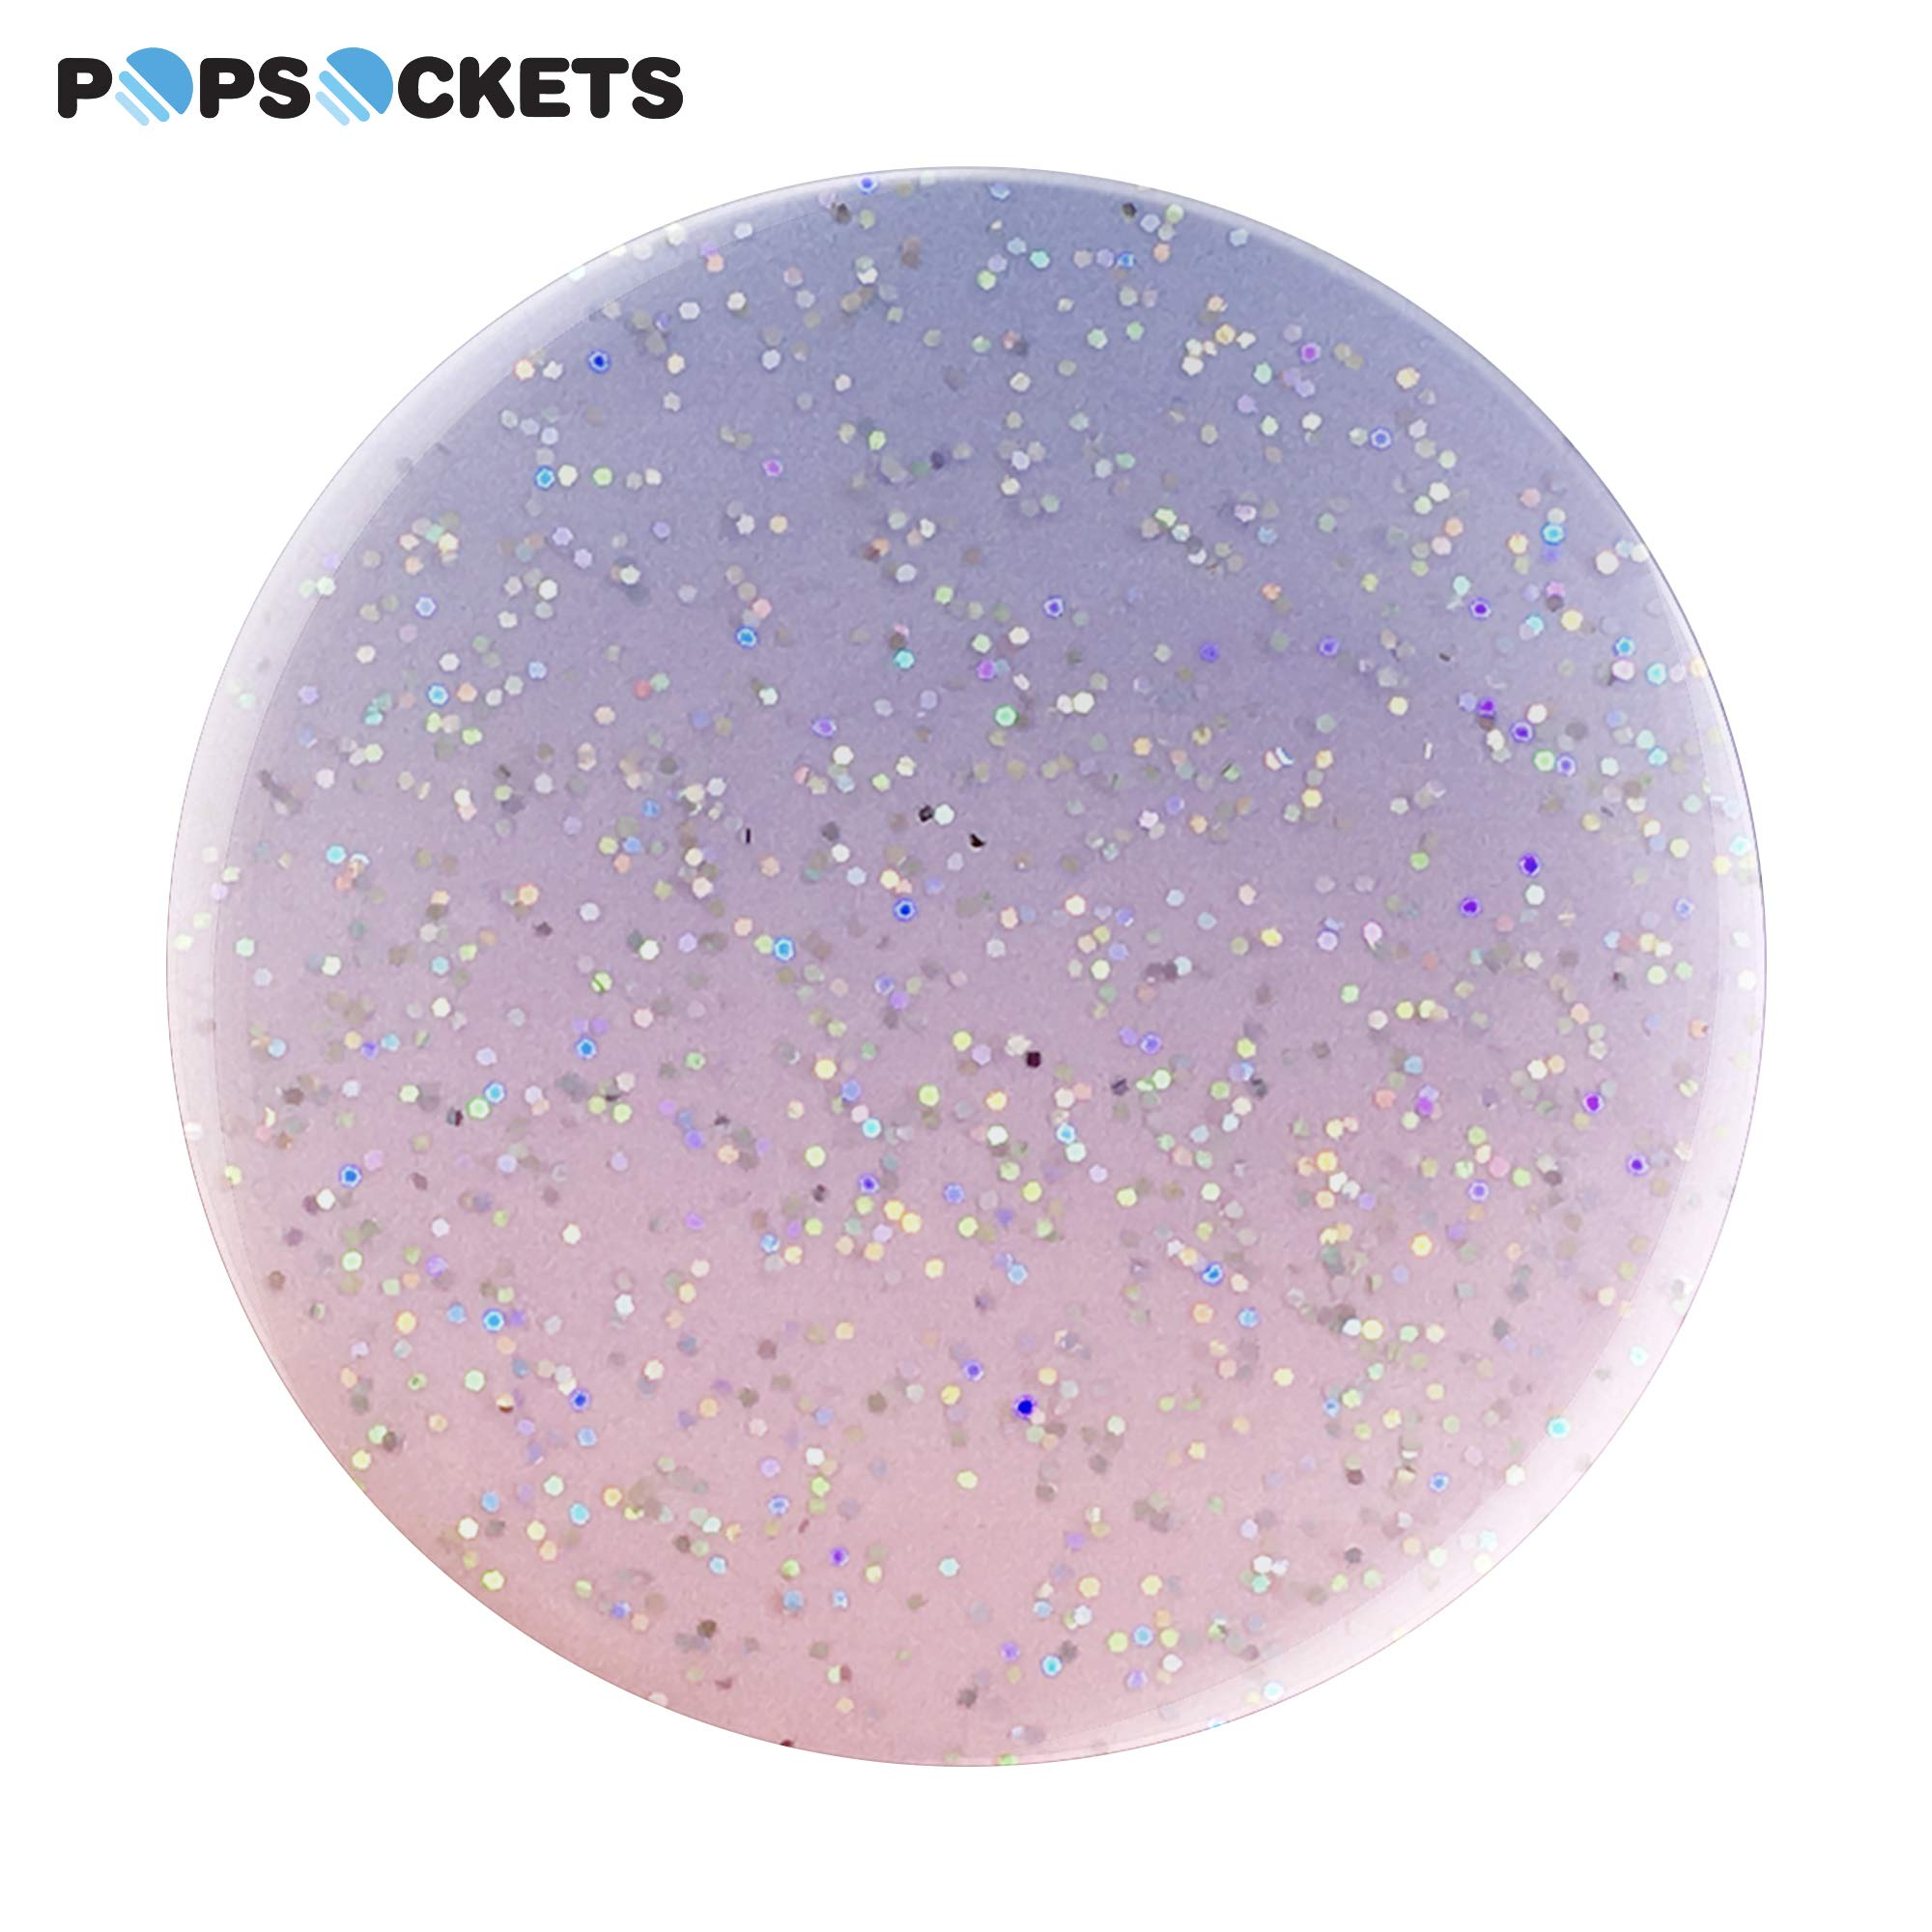 PopSockets: Collapsible Grip & Stand for Phones and Tablets - Glitter Morning Haze by PopSockets